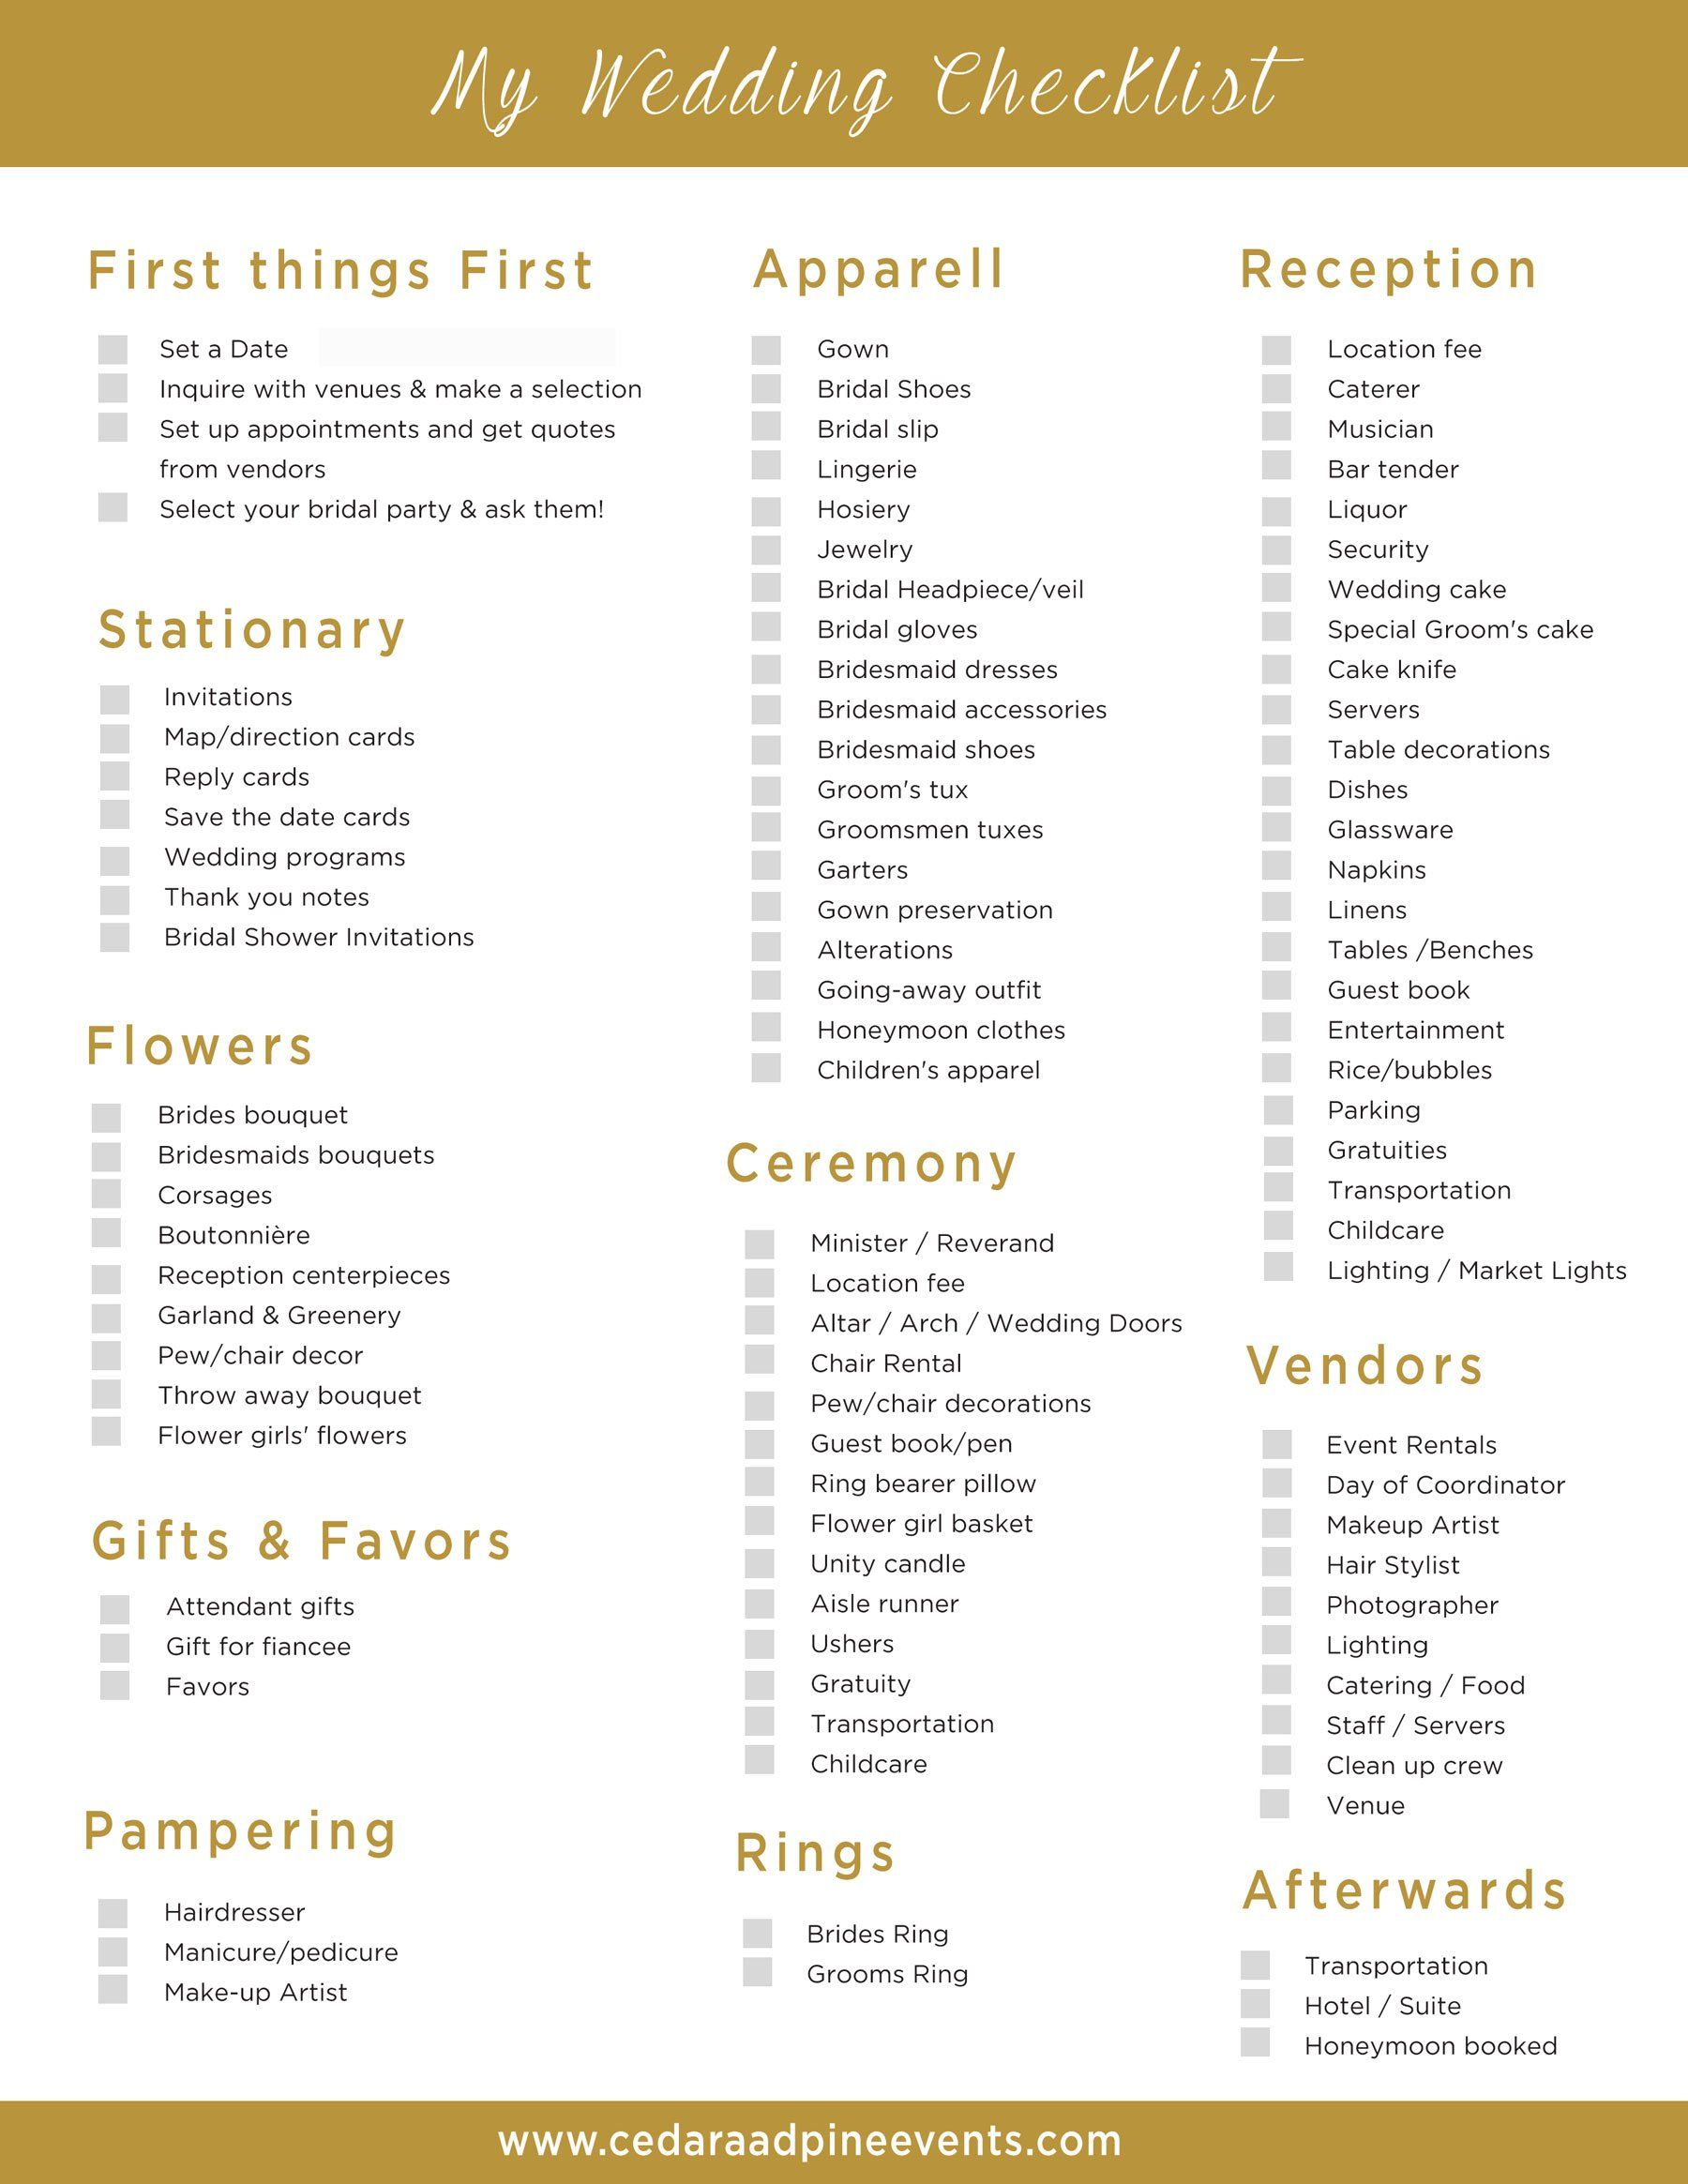 Free Printable Wedding Planning Check List is part of Wedding planning list - You just got engaged! Congratulations! Now all the wedding planning fun begins  But where do you start  Weddings are so much fun to plan but there are a lot of details that can so easily slip your mind as you make all the decisions leading up to your big day  Who will your photographer be  …